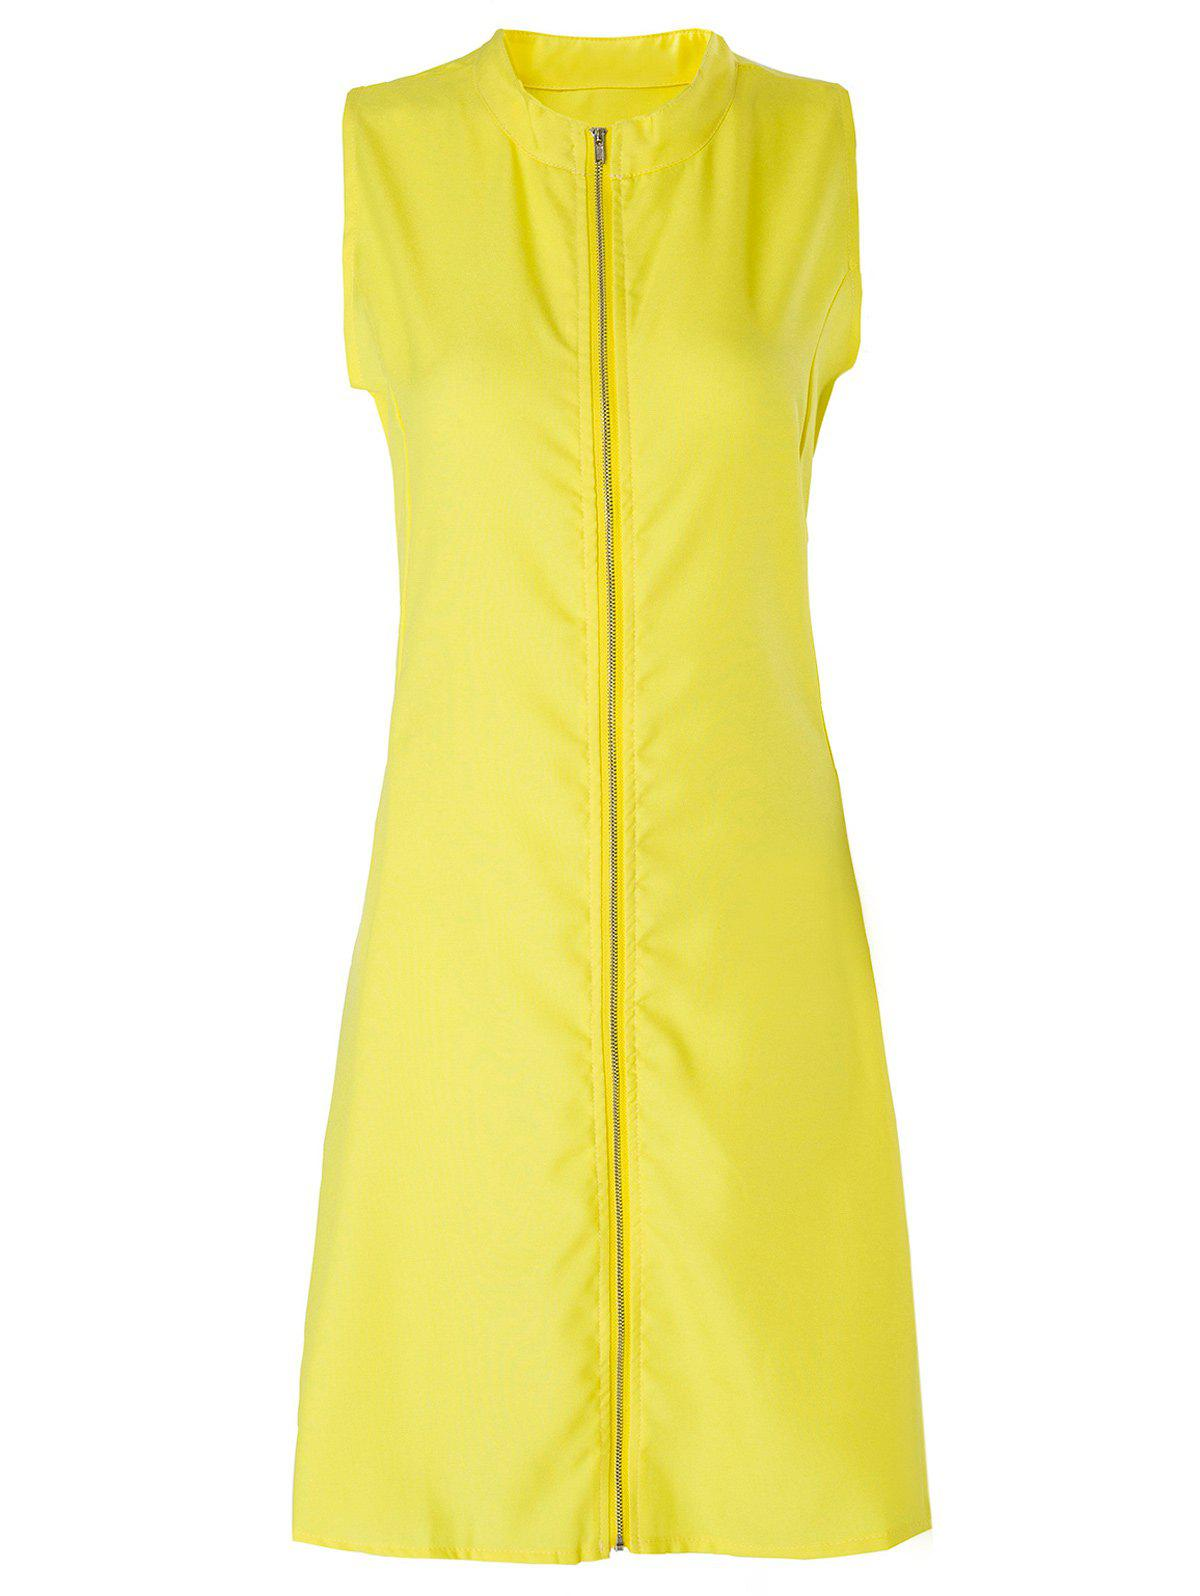 Stylish Stand Collar Solid Color Plus Size Zipper Design Sleeveless Women's Dress - YELLOW XL